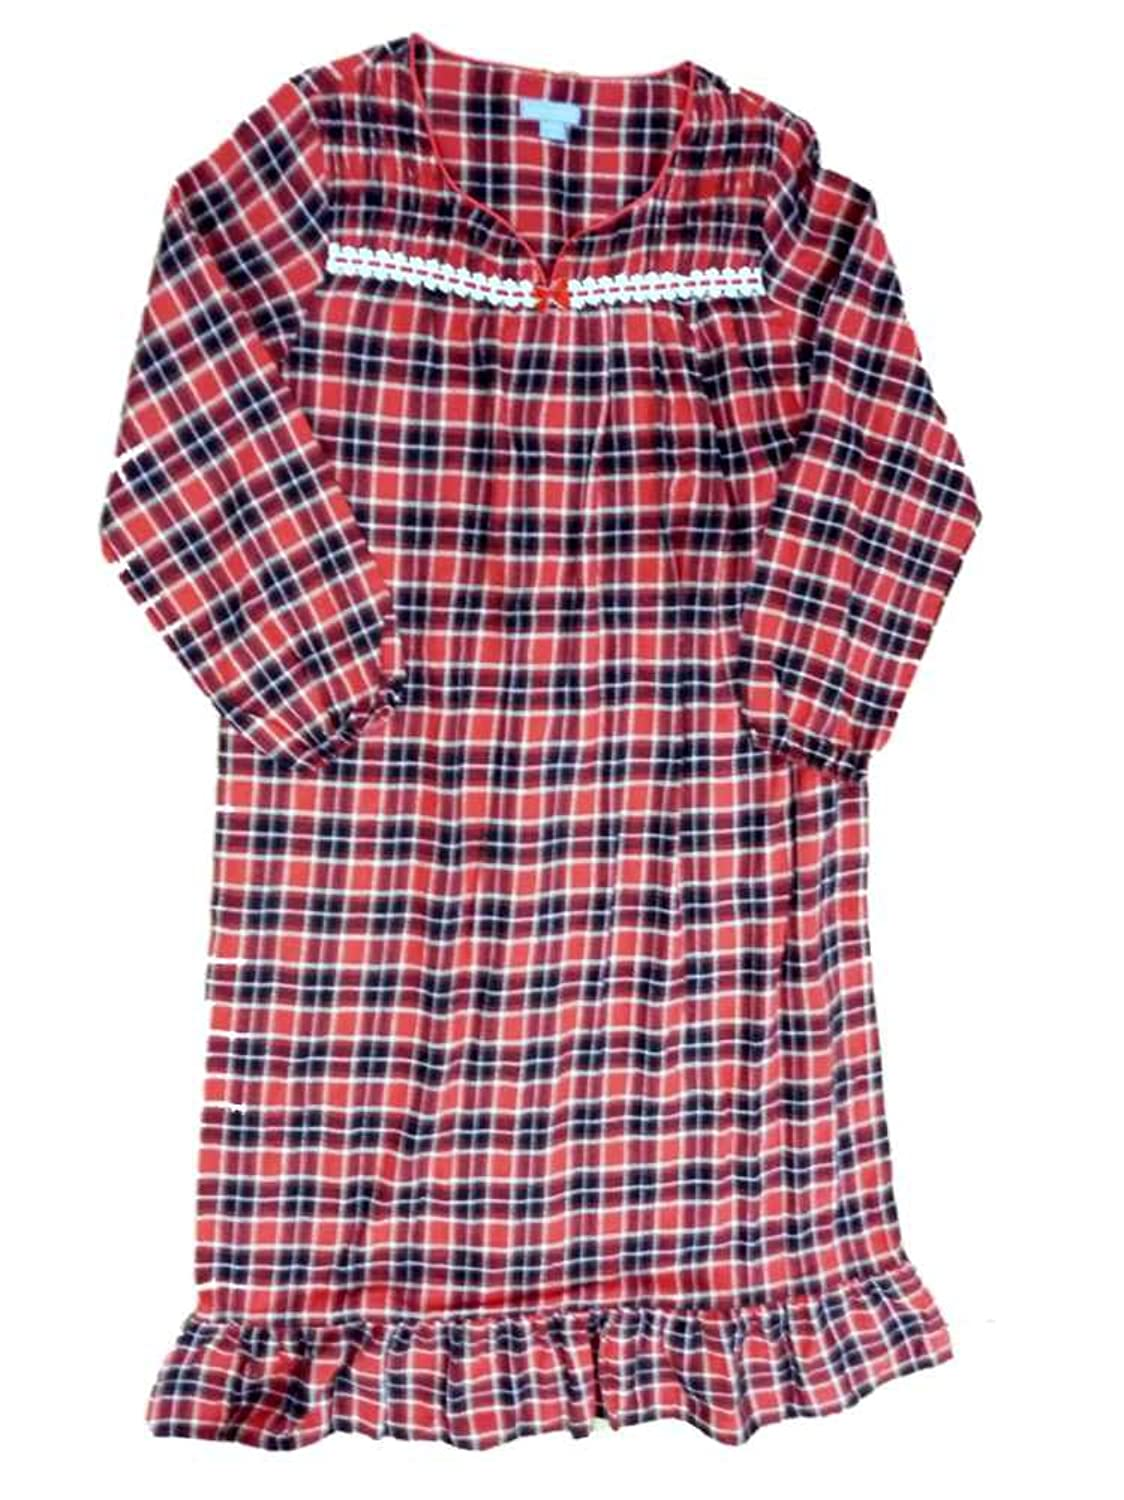 Laura Scott Womens Red Plaid Flannel Nightgown Night Gown Medium at ...